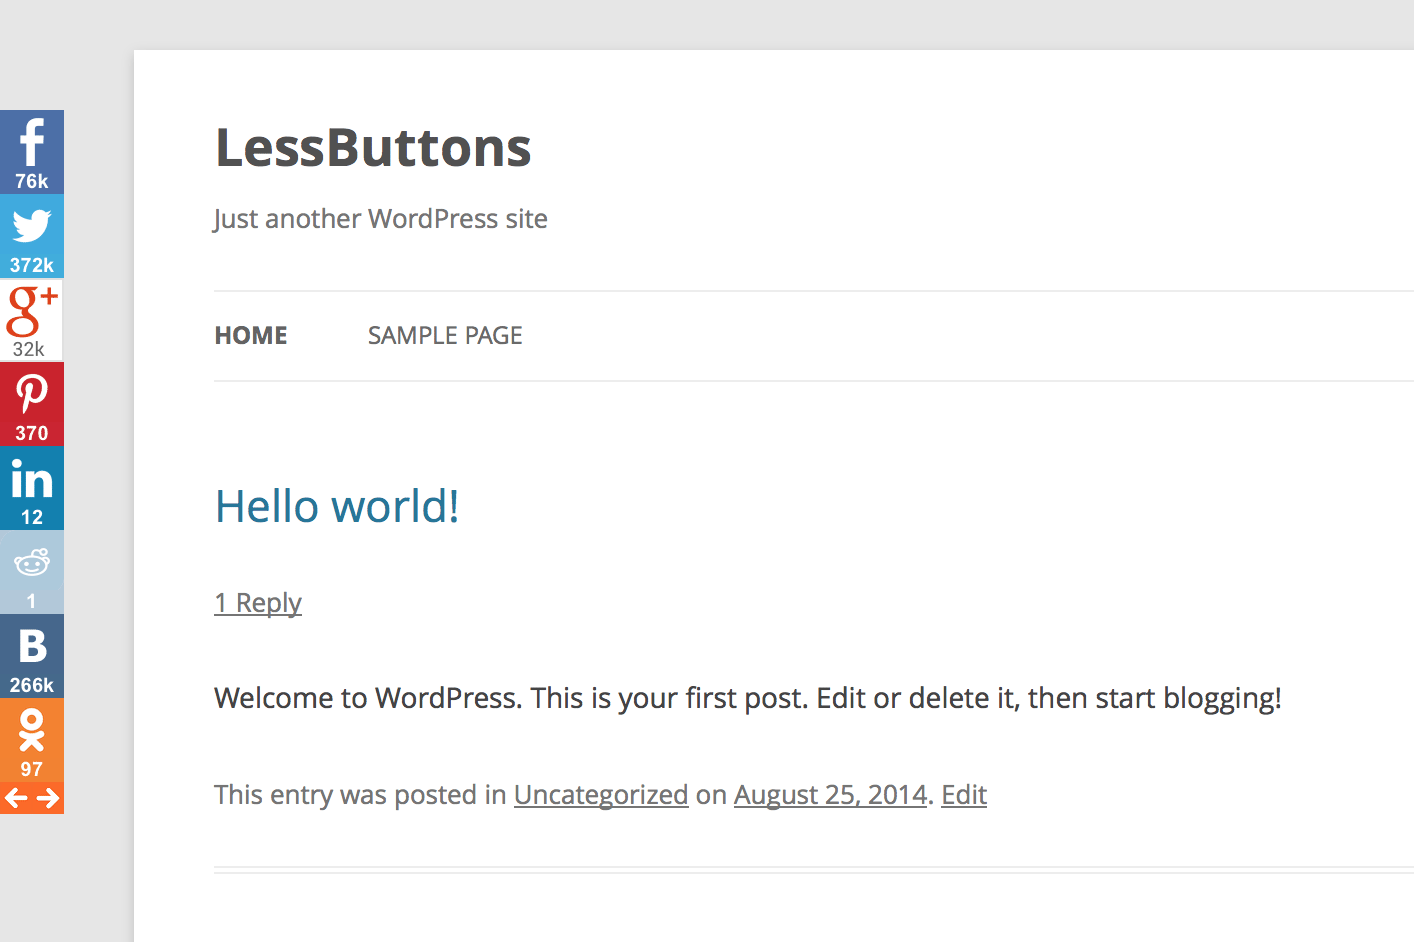 lessbuttons screenshot 2